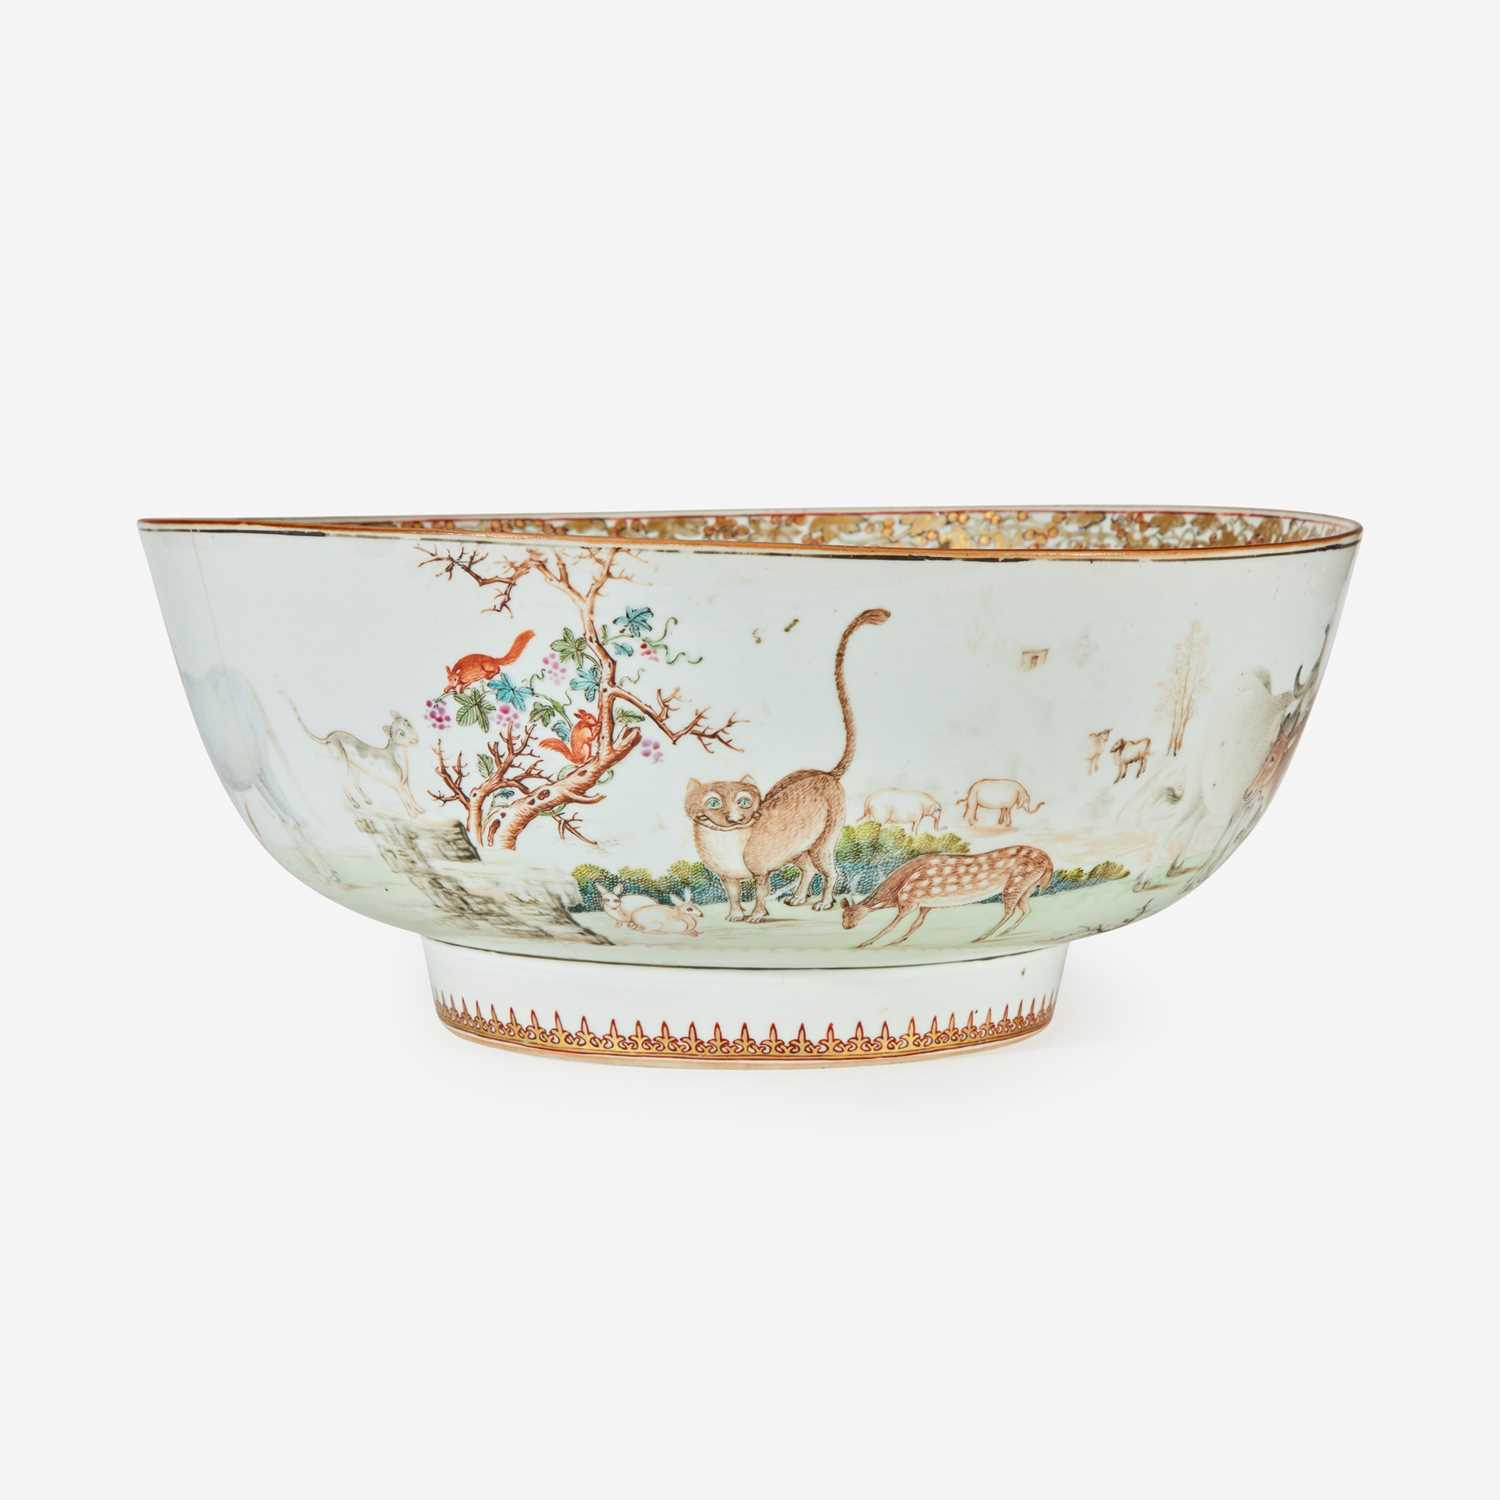 Lot 91 - A Chinese Export porcelain gilt and polychrome decorated punch bowl